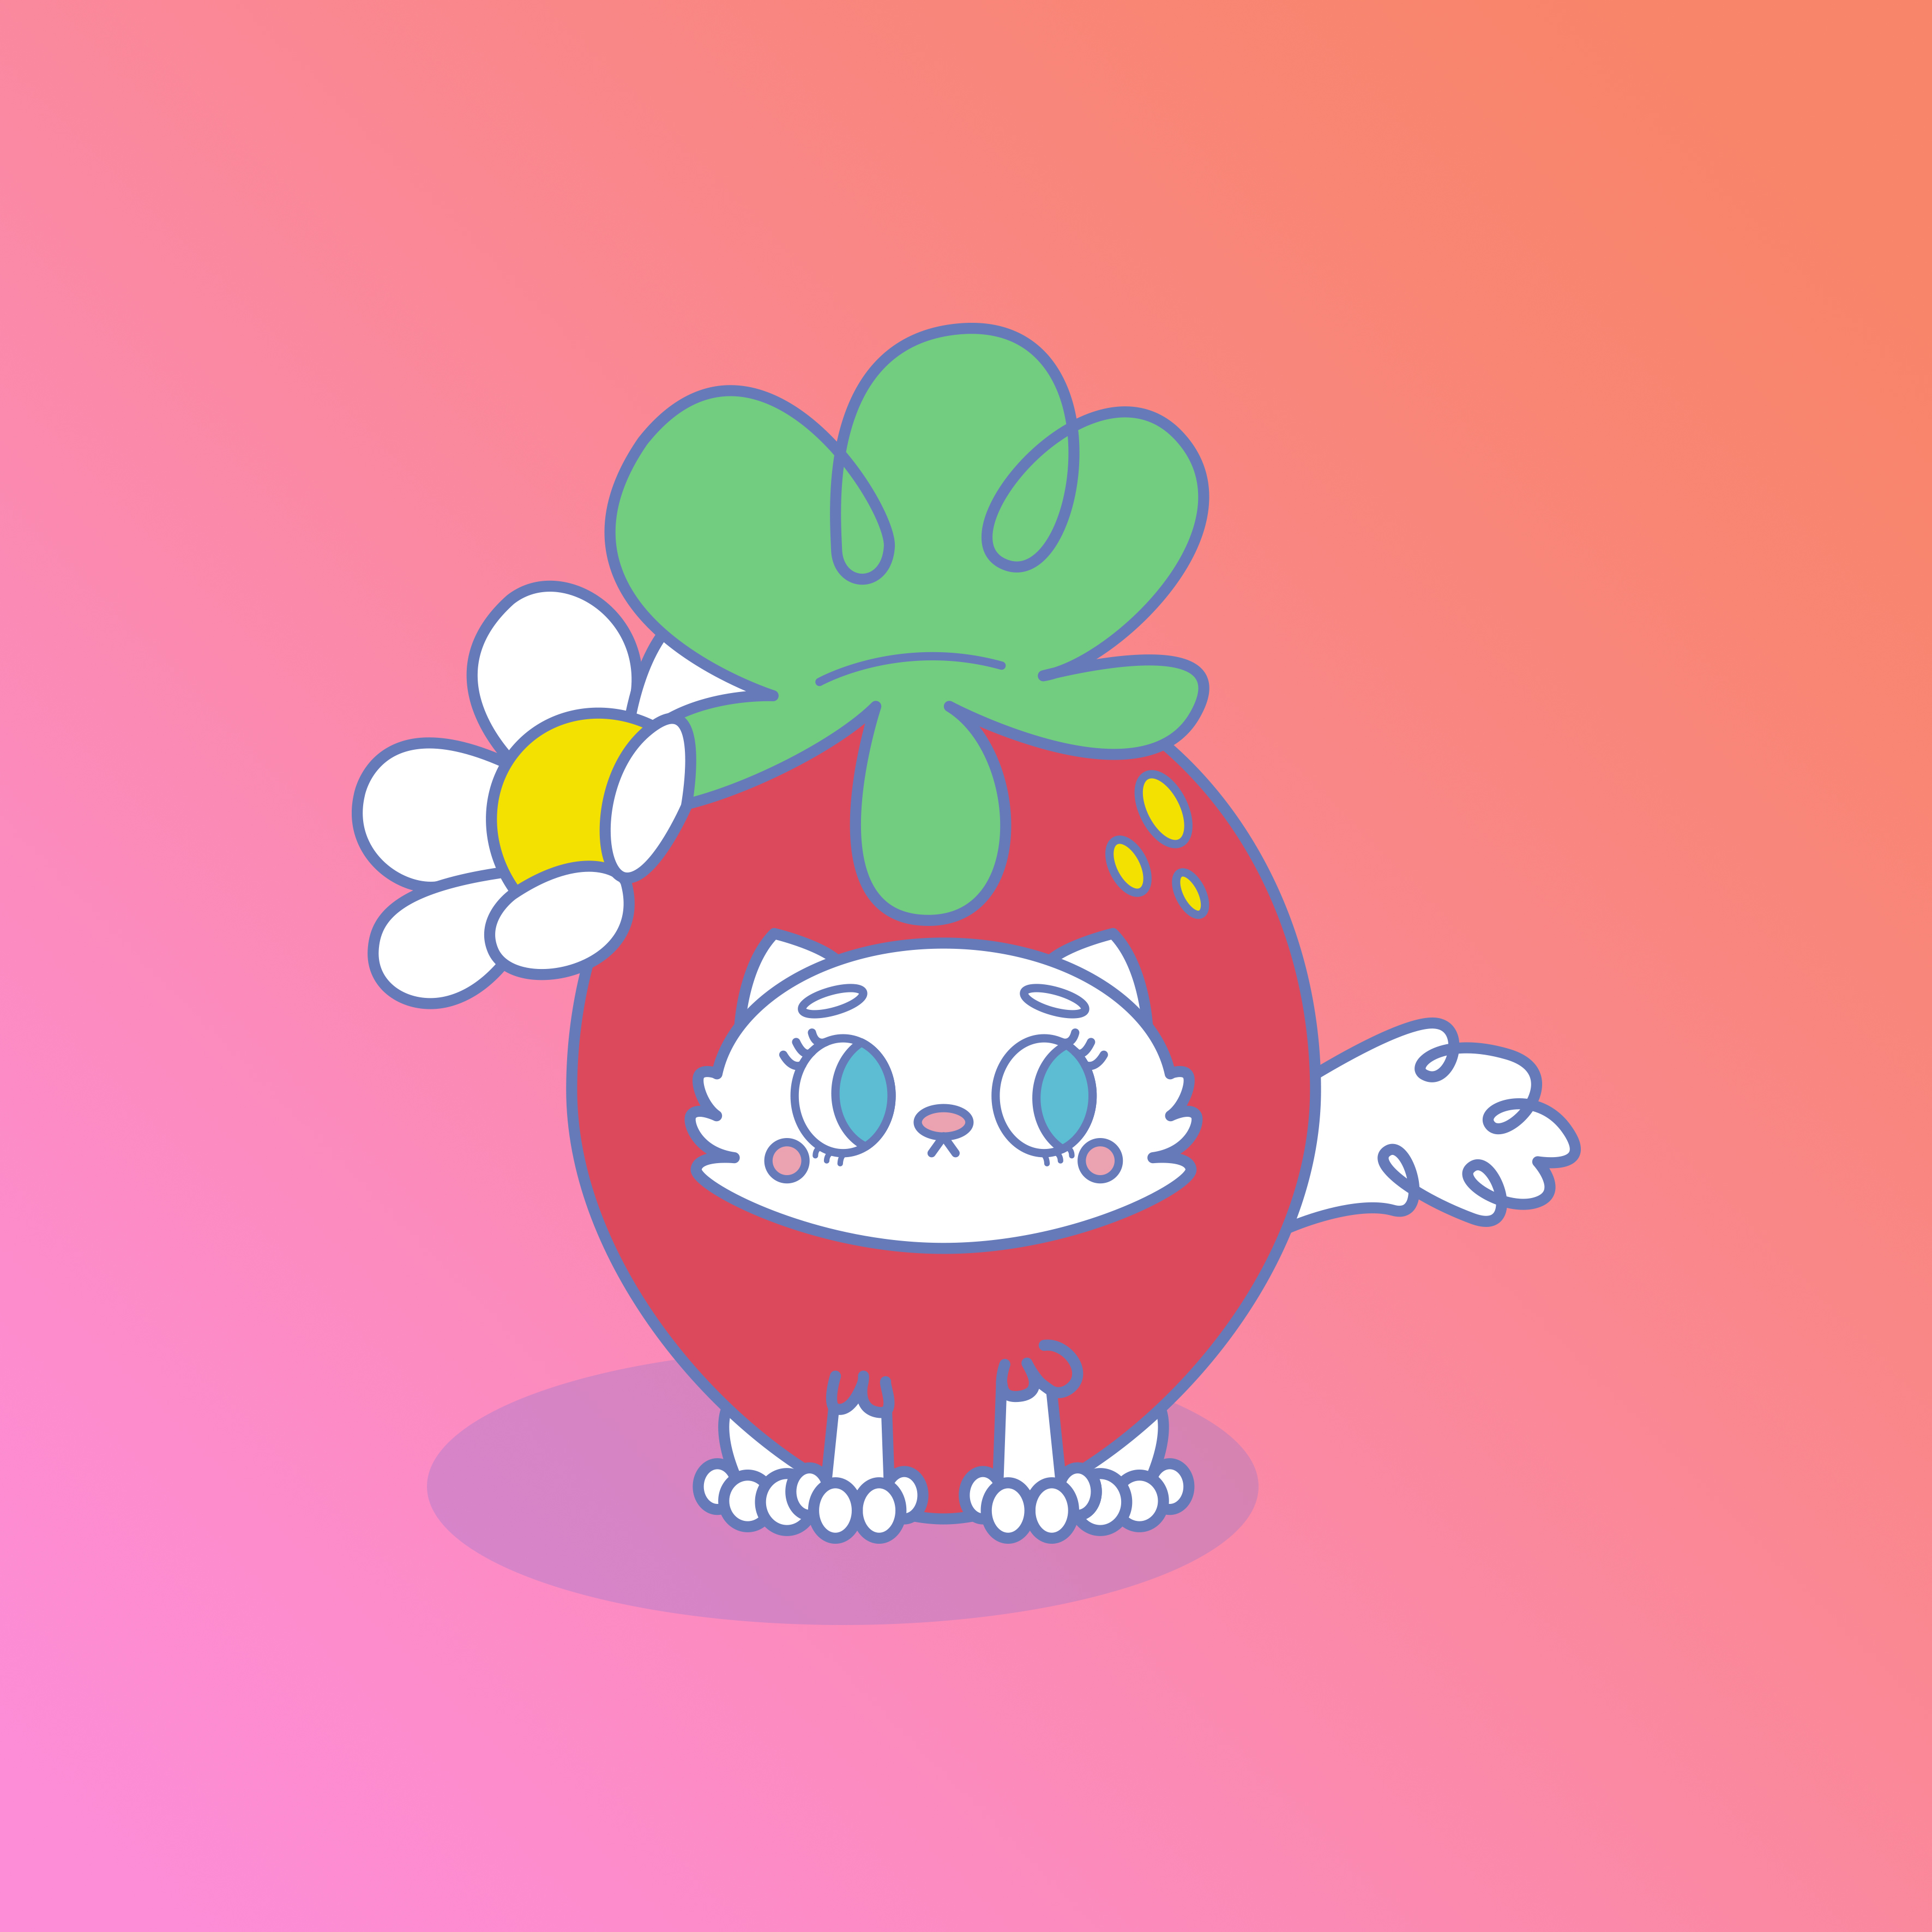 purrrfect strawberry